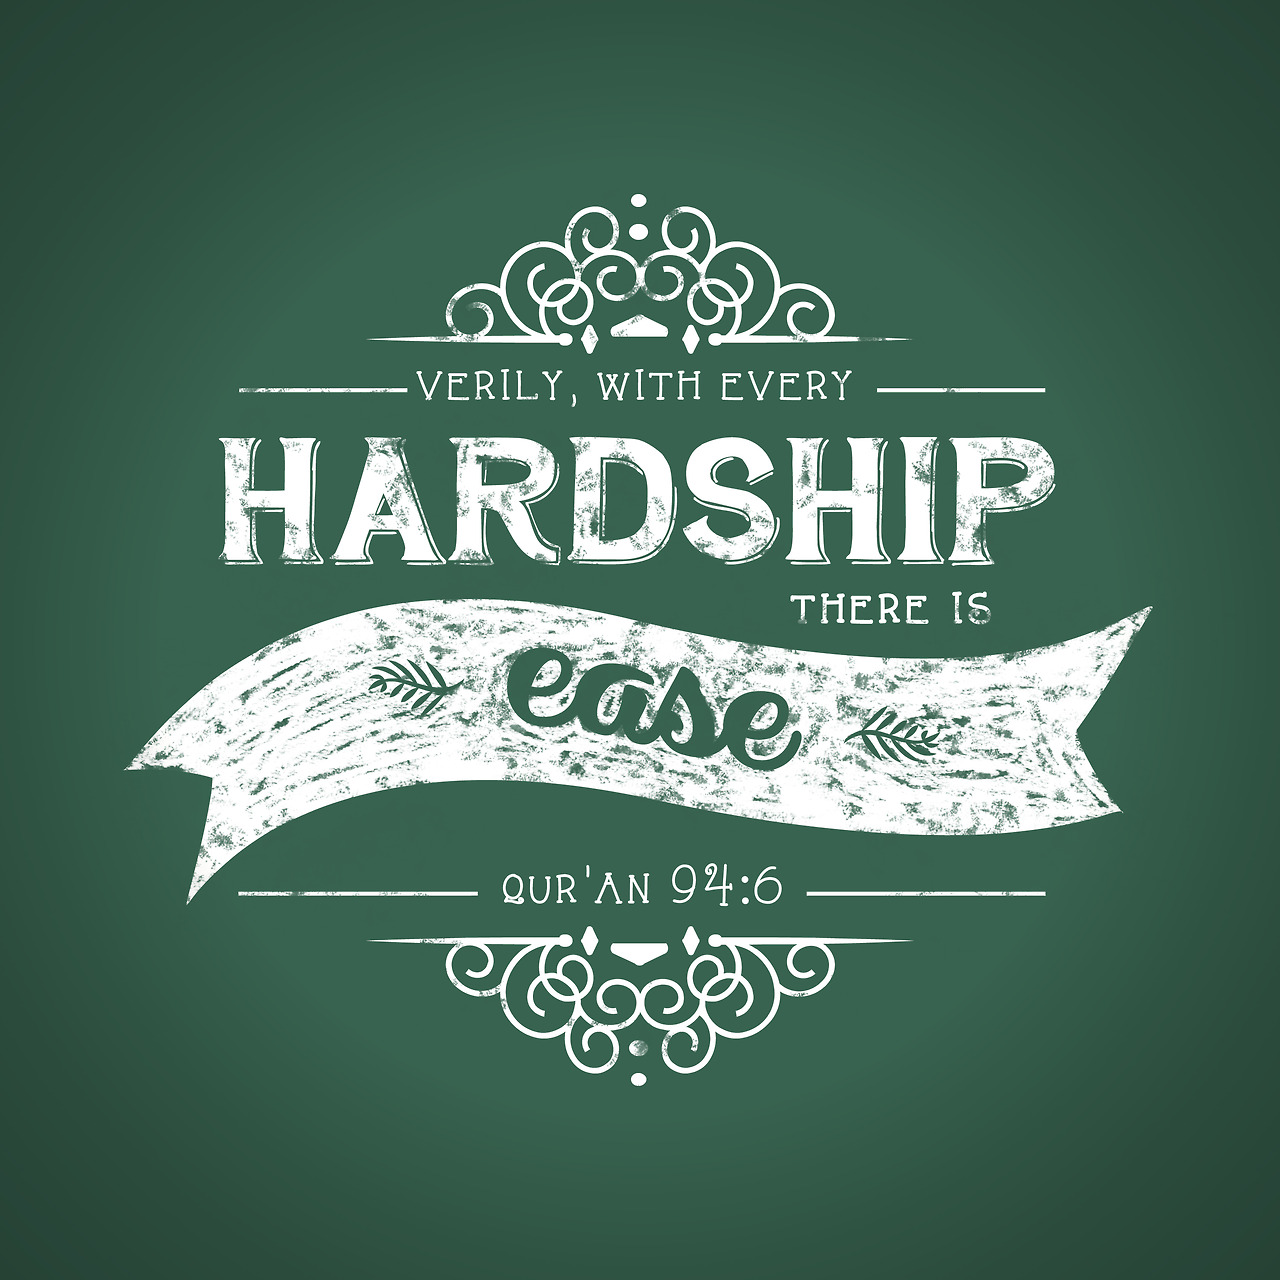 Hardships In Relationships Quotes: Relationship Hardship Quotes. QuotesGram